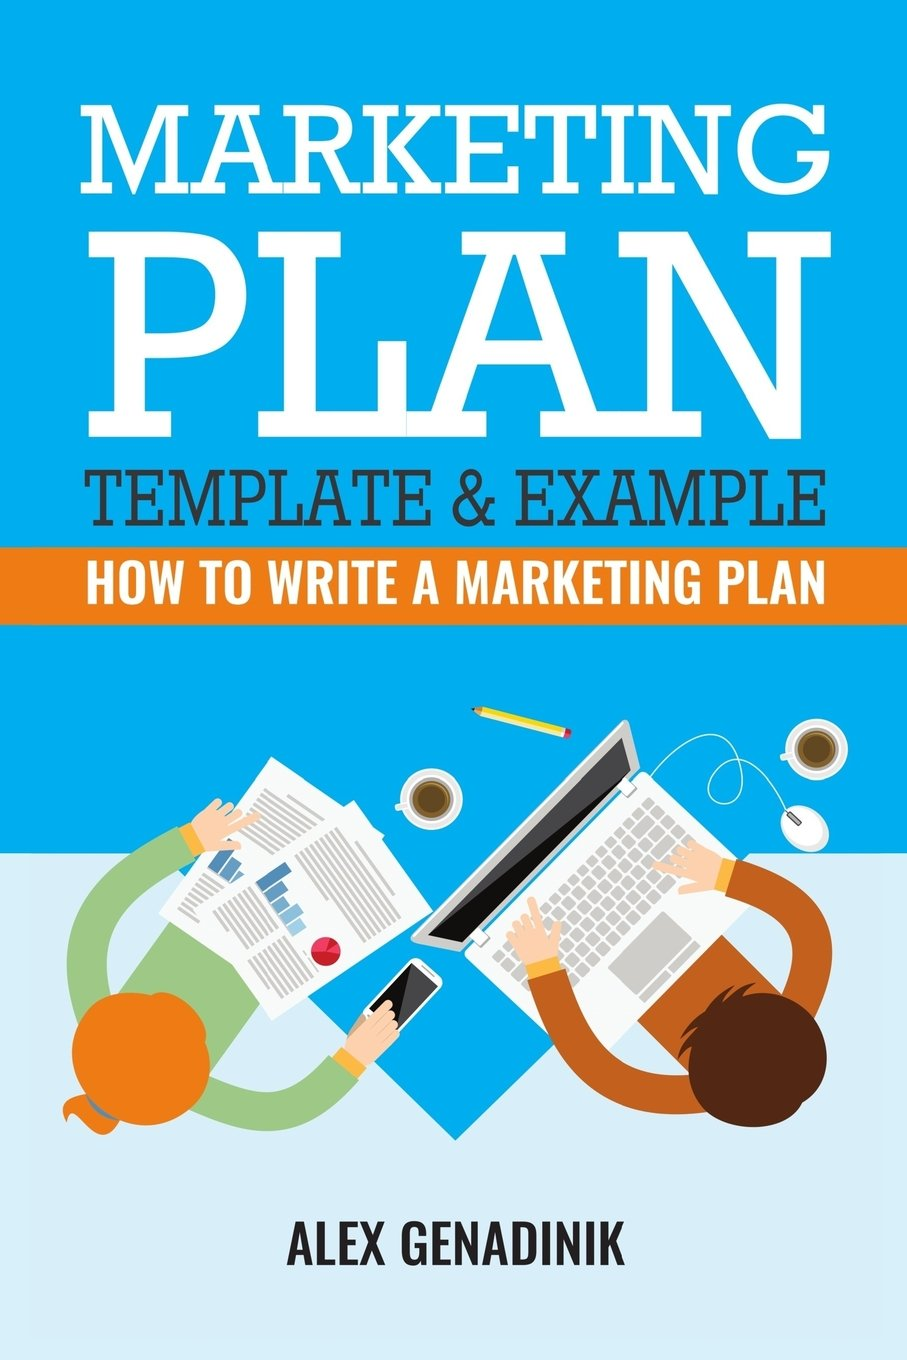 Marketing Plan Template Example marketing product image